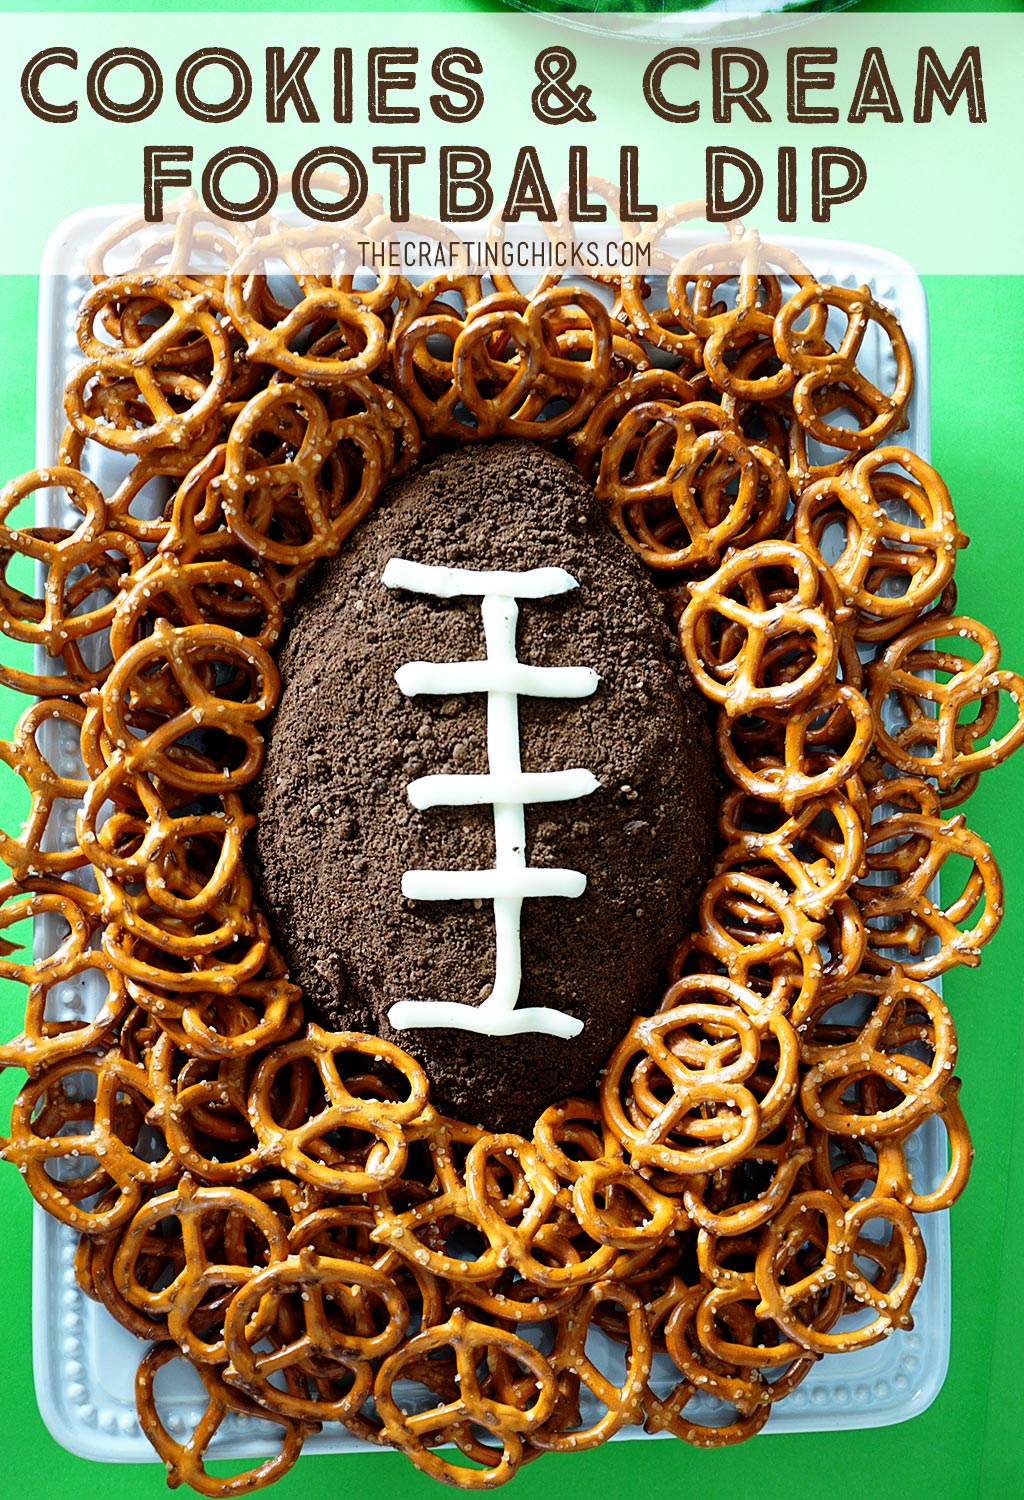 Cookies and Cream Football Dip Superbowl